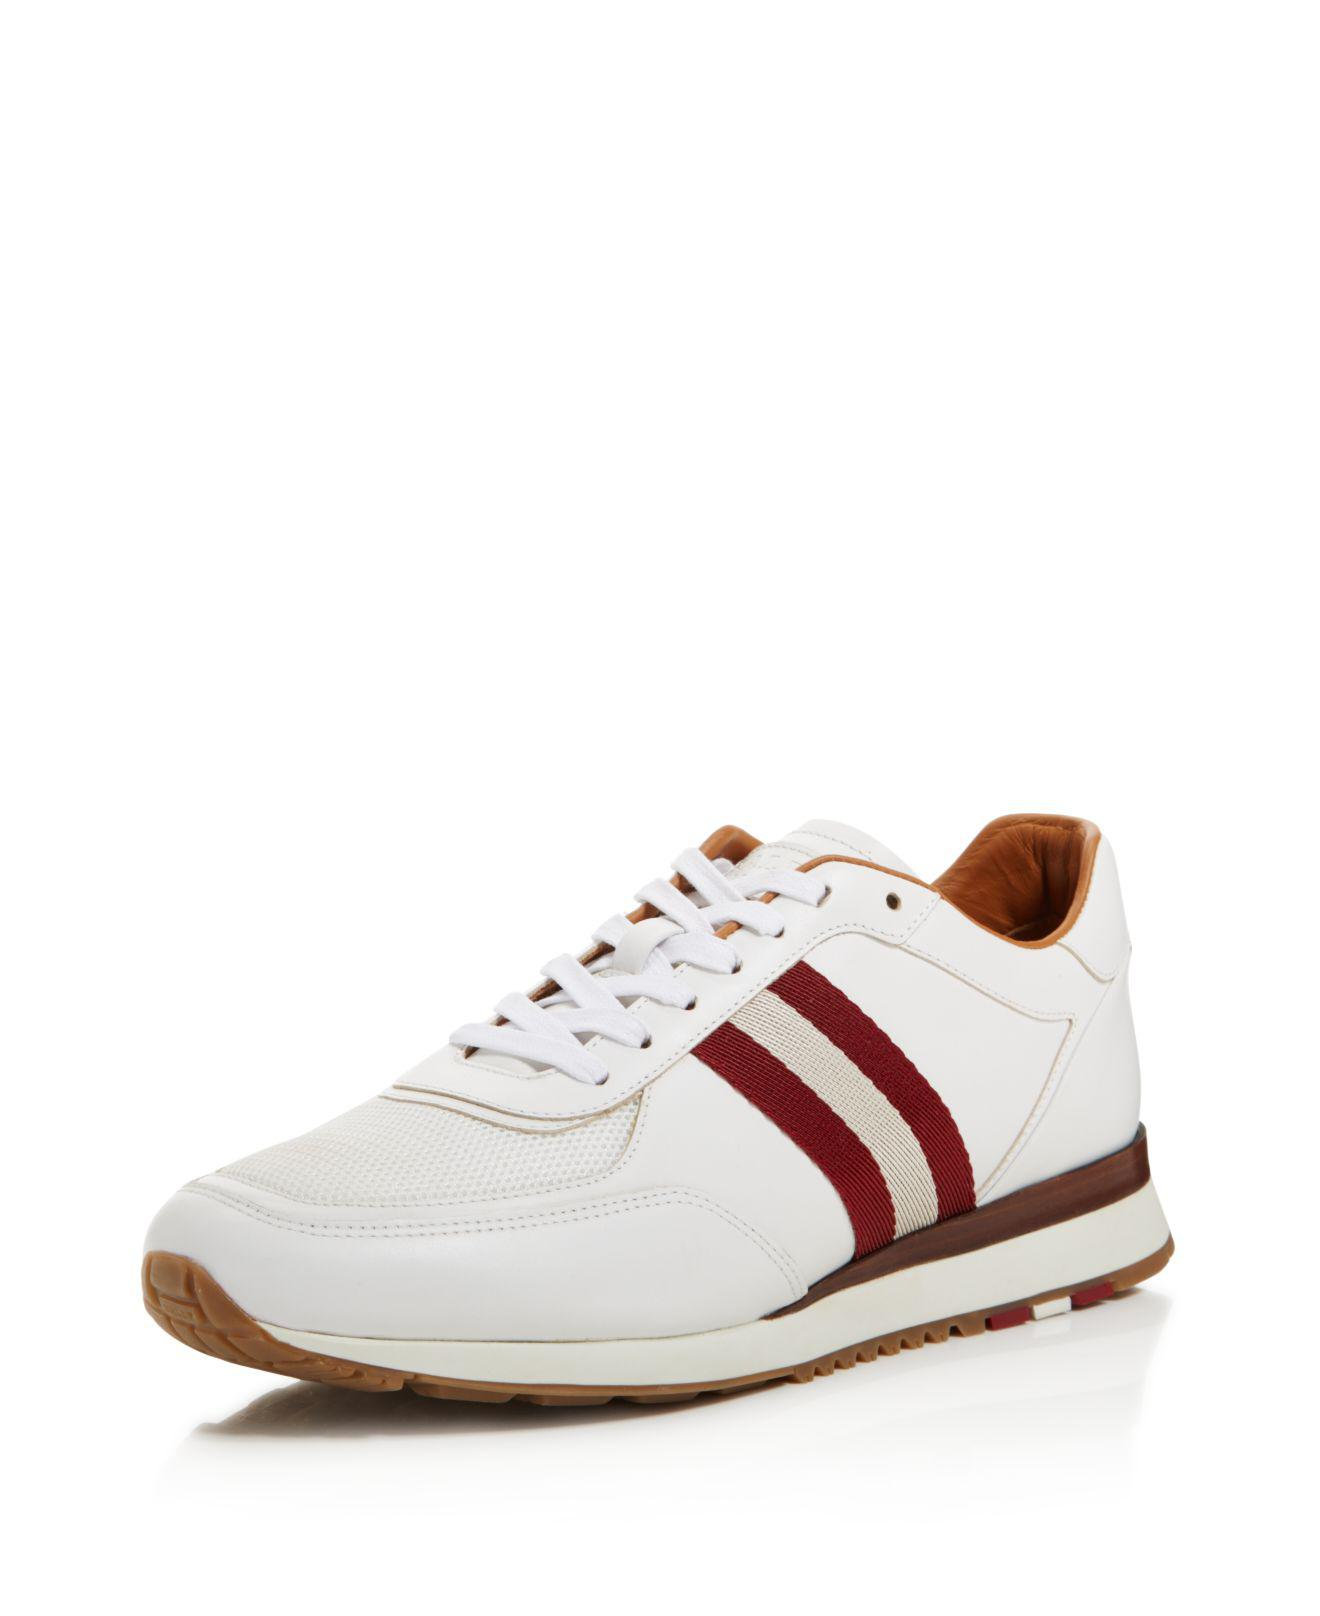 Aston White, Mens leather trainer in white Bally